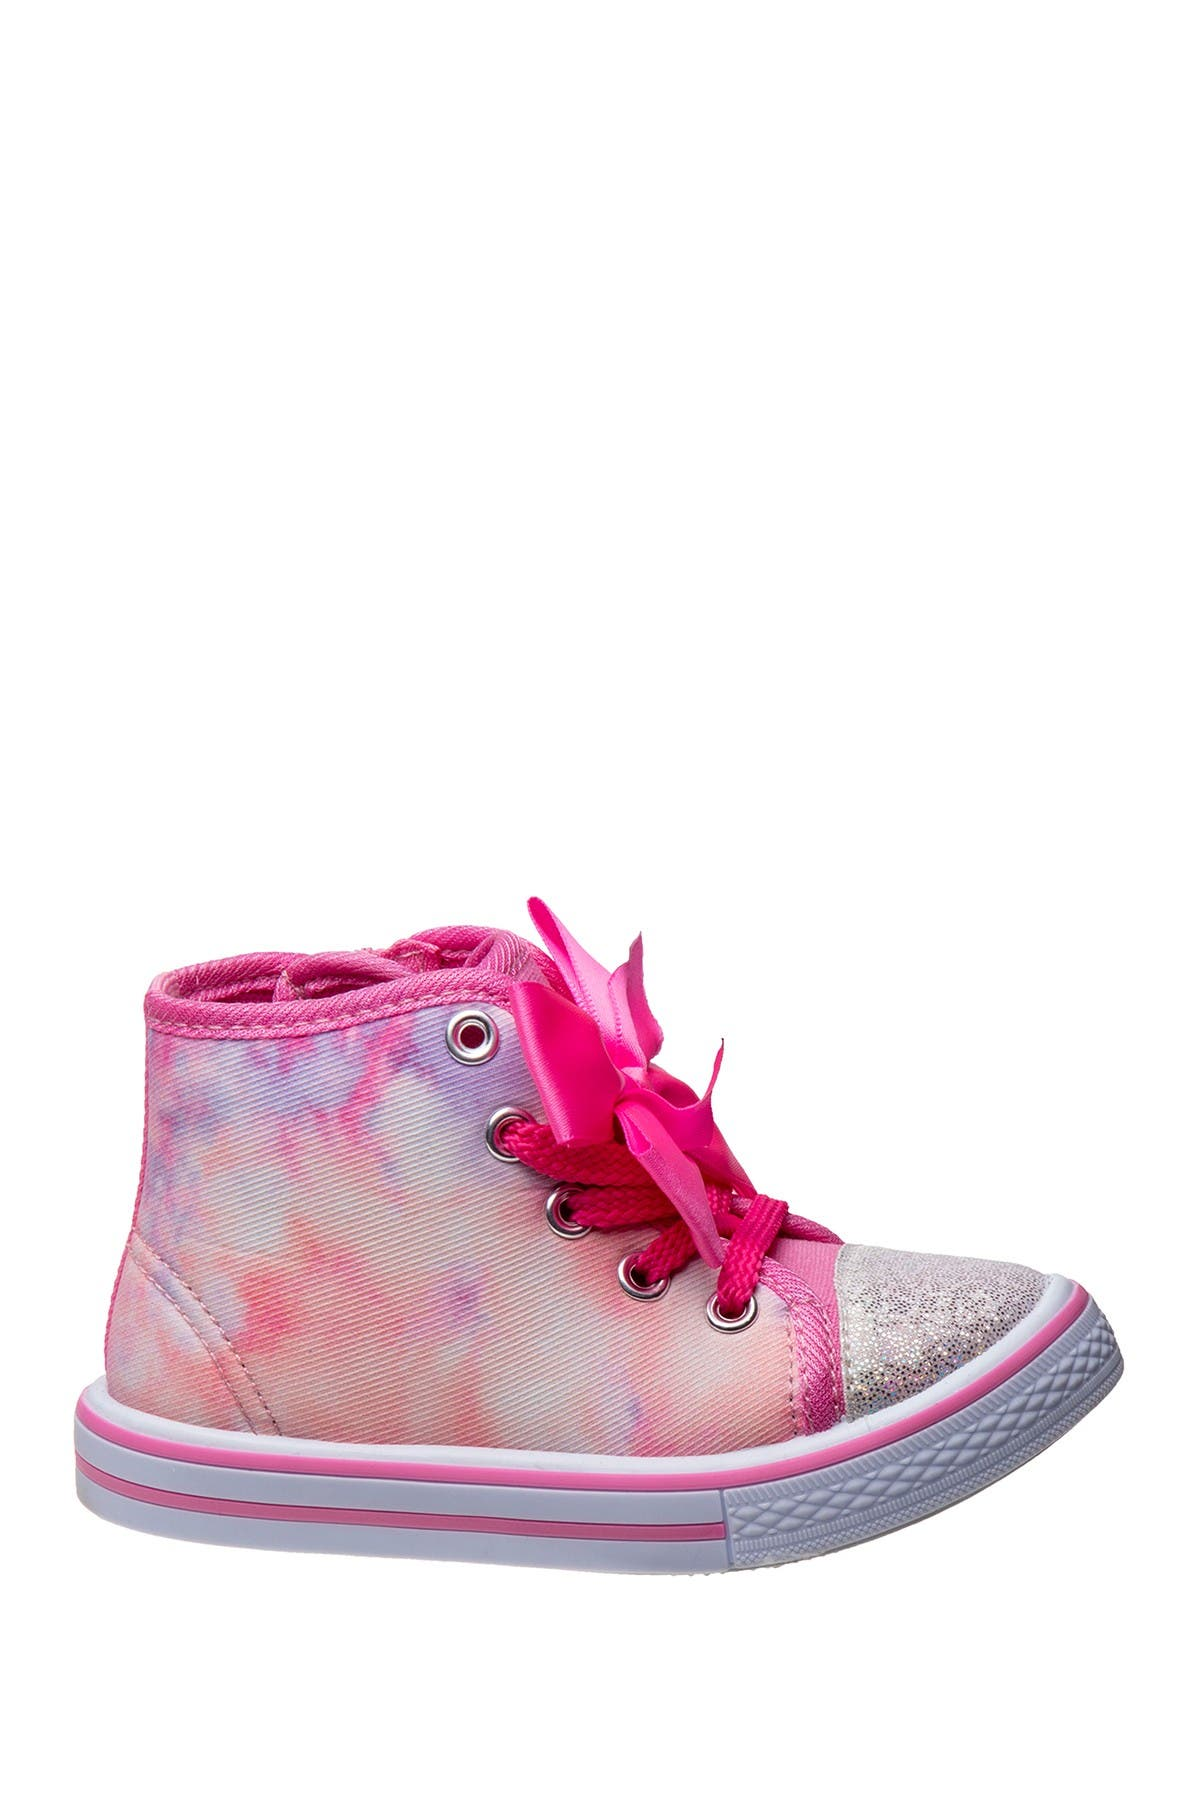 Image of Josmo Tie Dye Bow High Top Sneaker